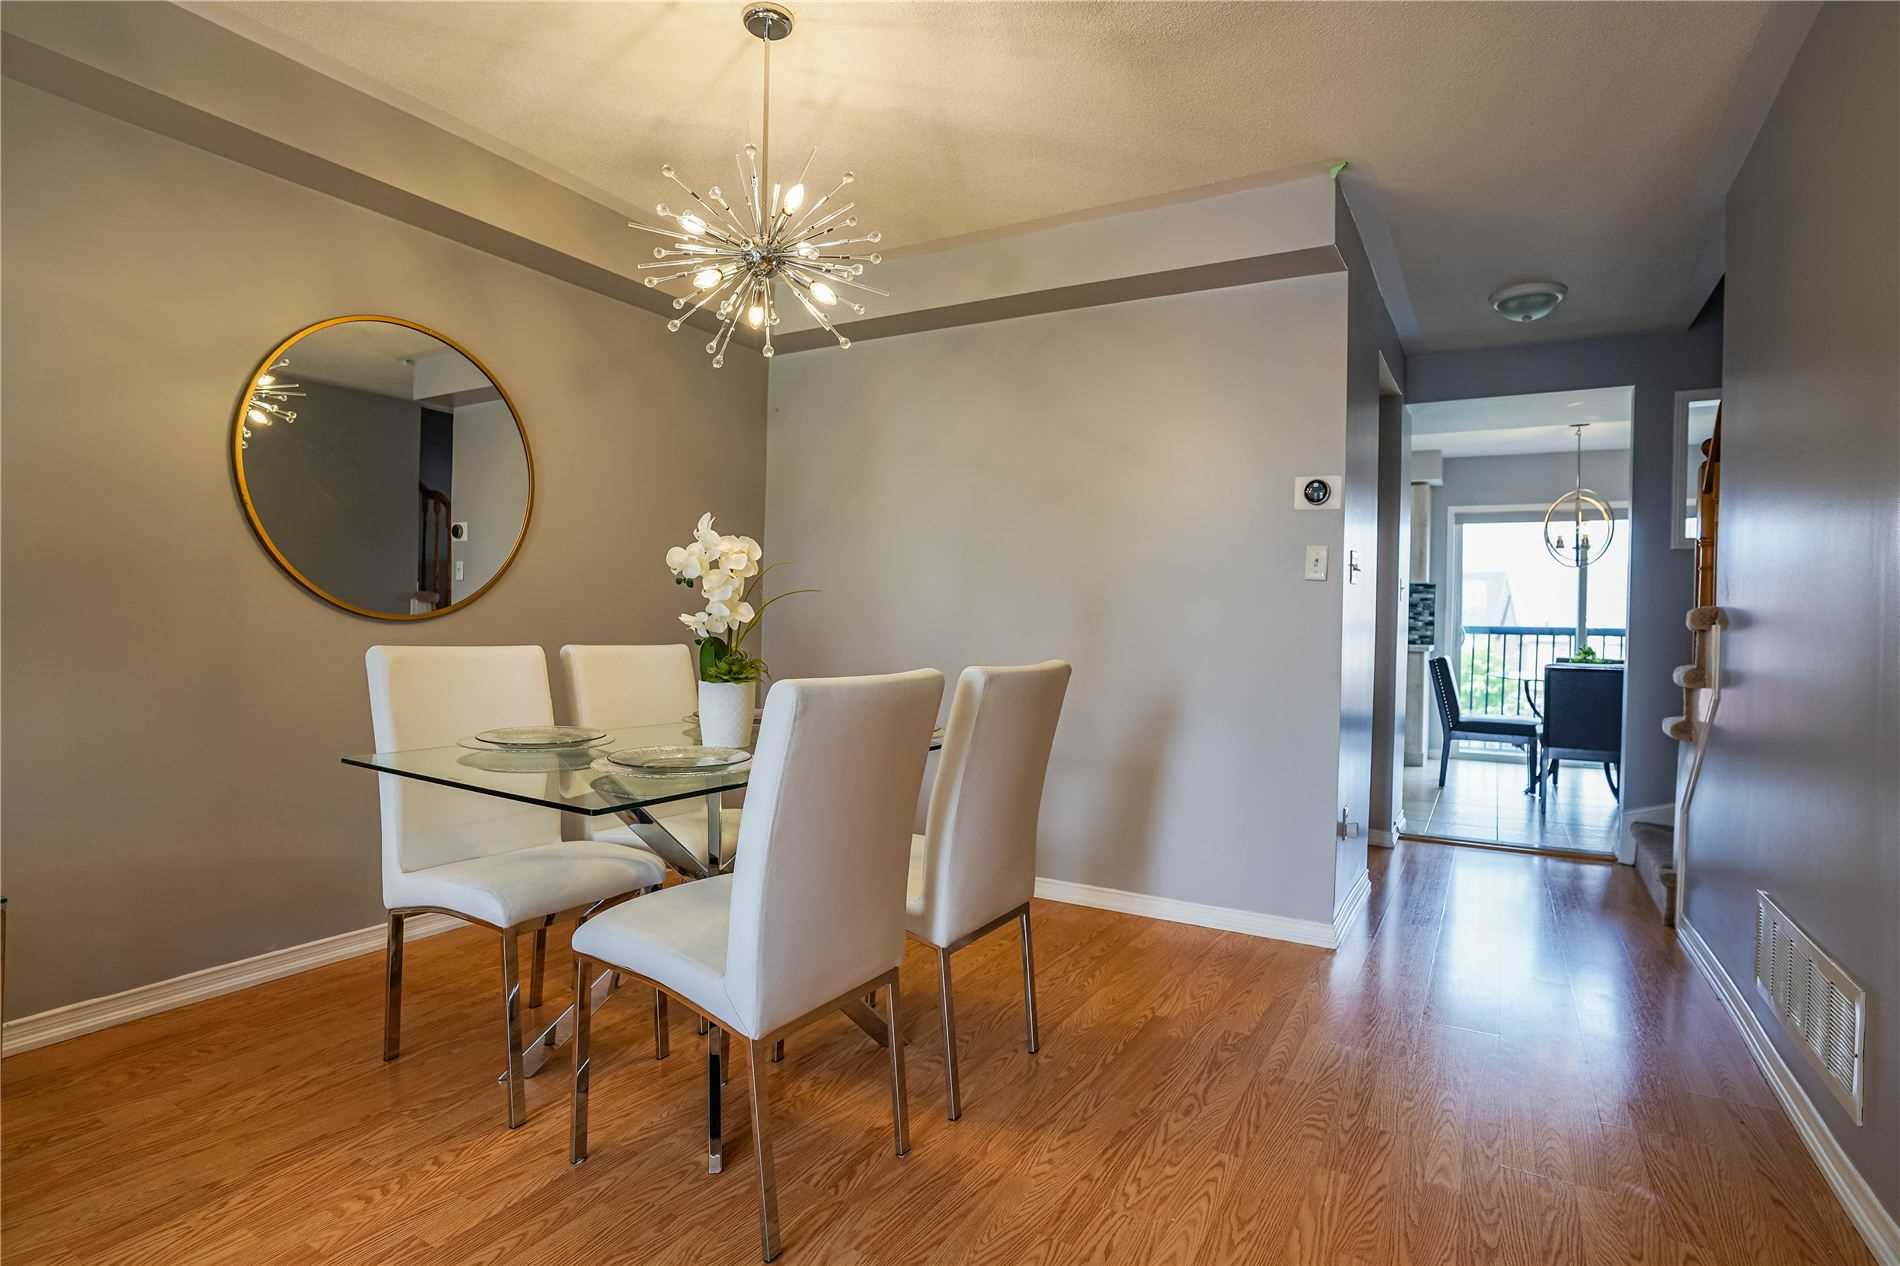 Image 21 of 25 showing inside of 3 Bedroom Condo Townhouse 3-Storey for Sale at 68 Oakins Lane W Unit# 34, Ajax L1T0H1